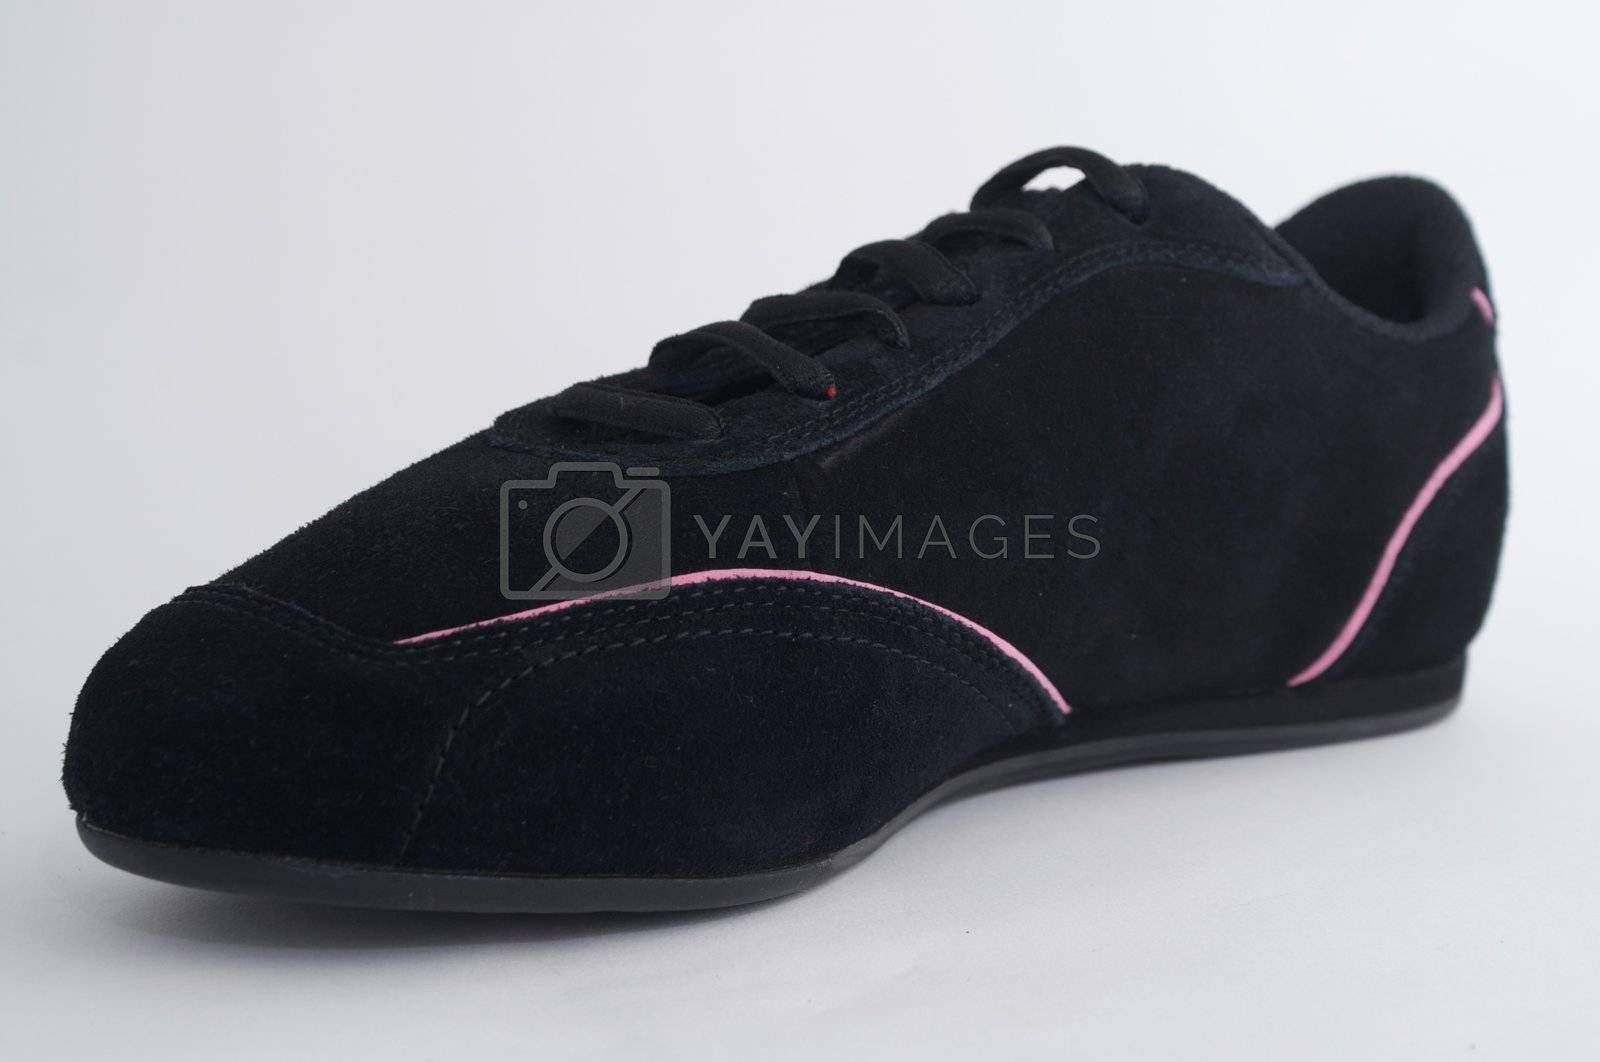 Black gym shoes on white background by olgaolga